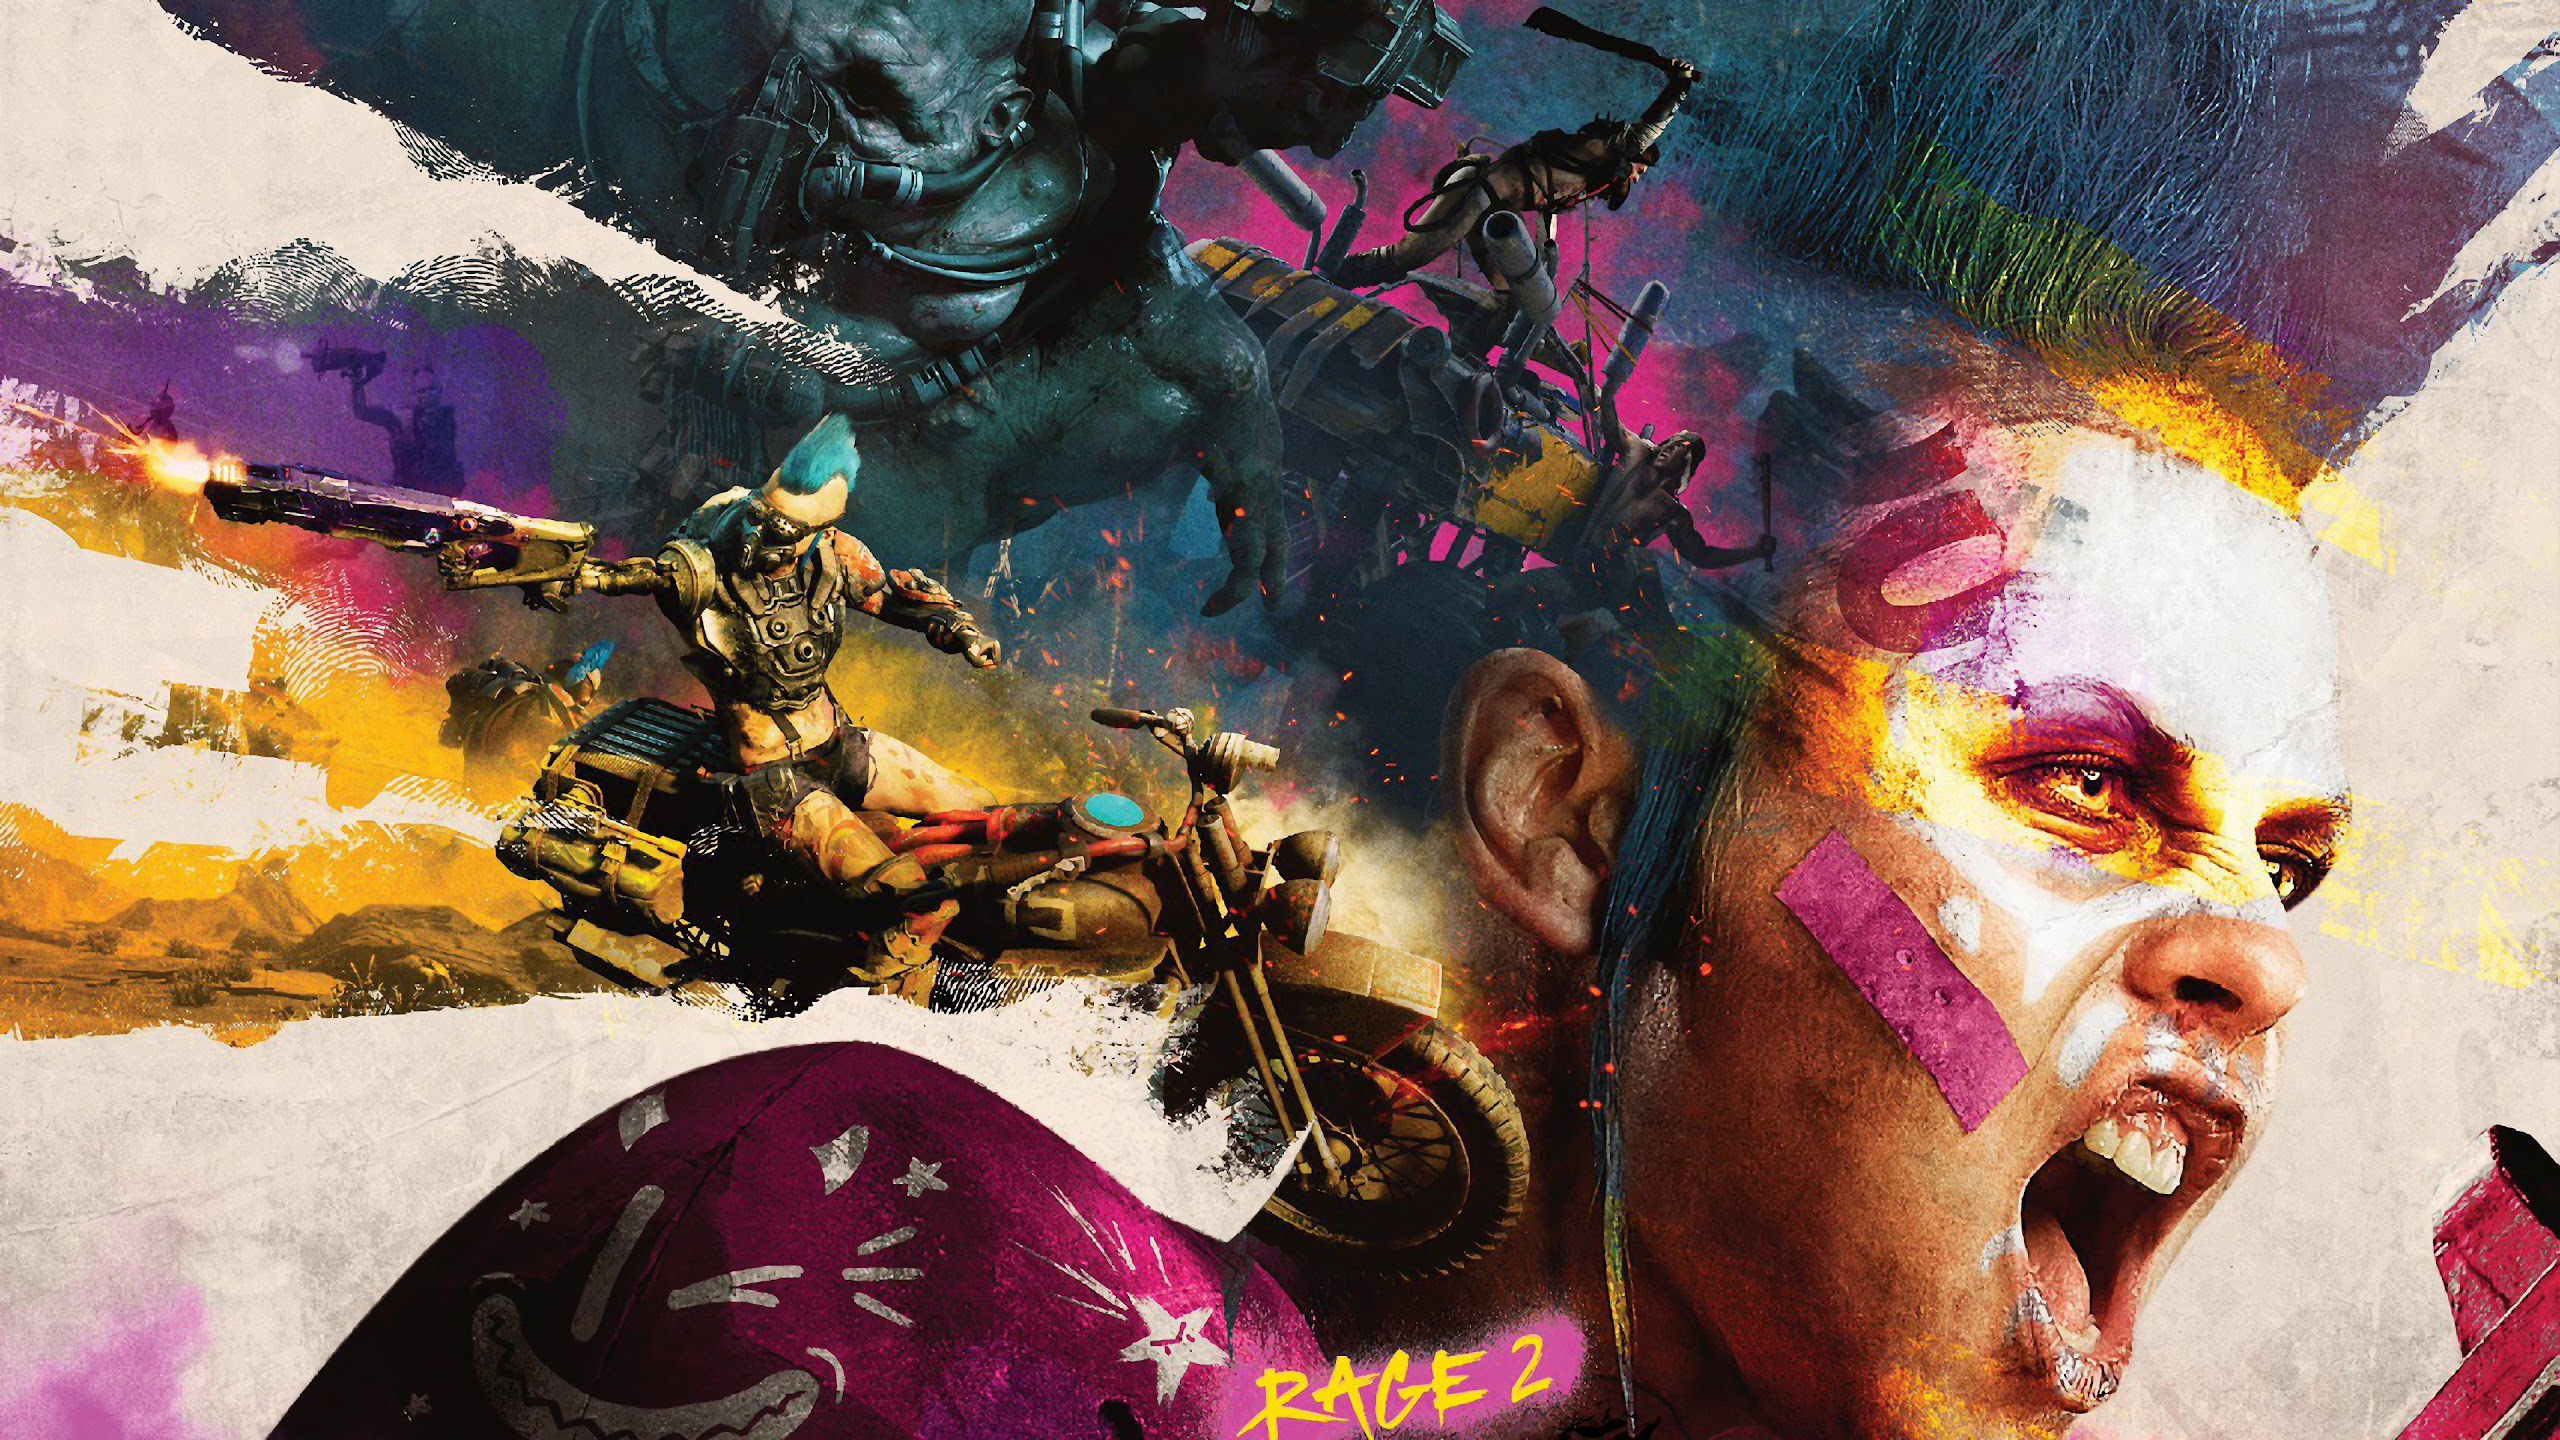 Rage 2 4k Wallpaper 8